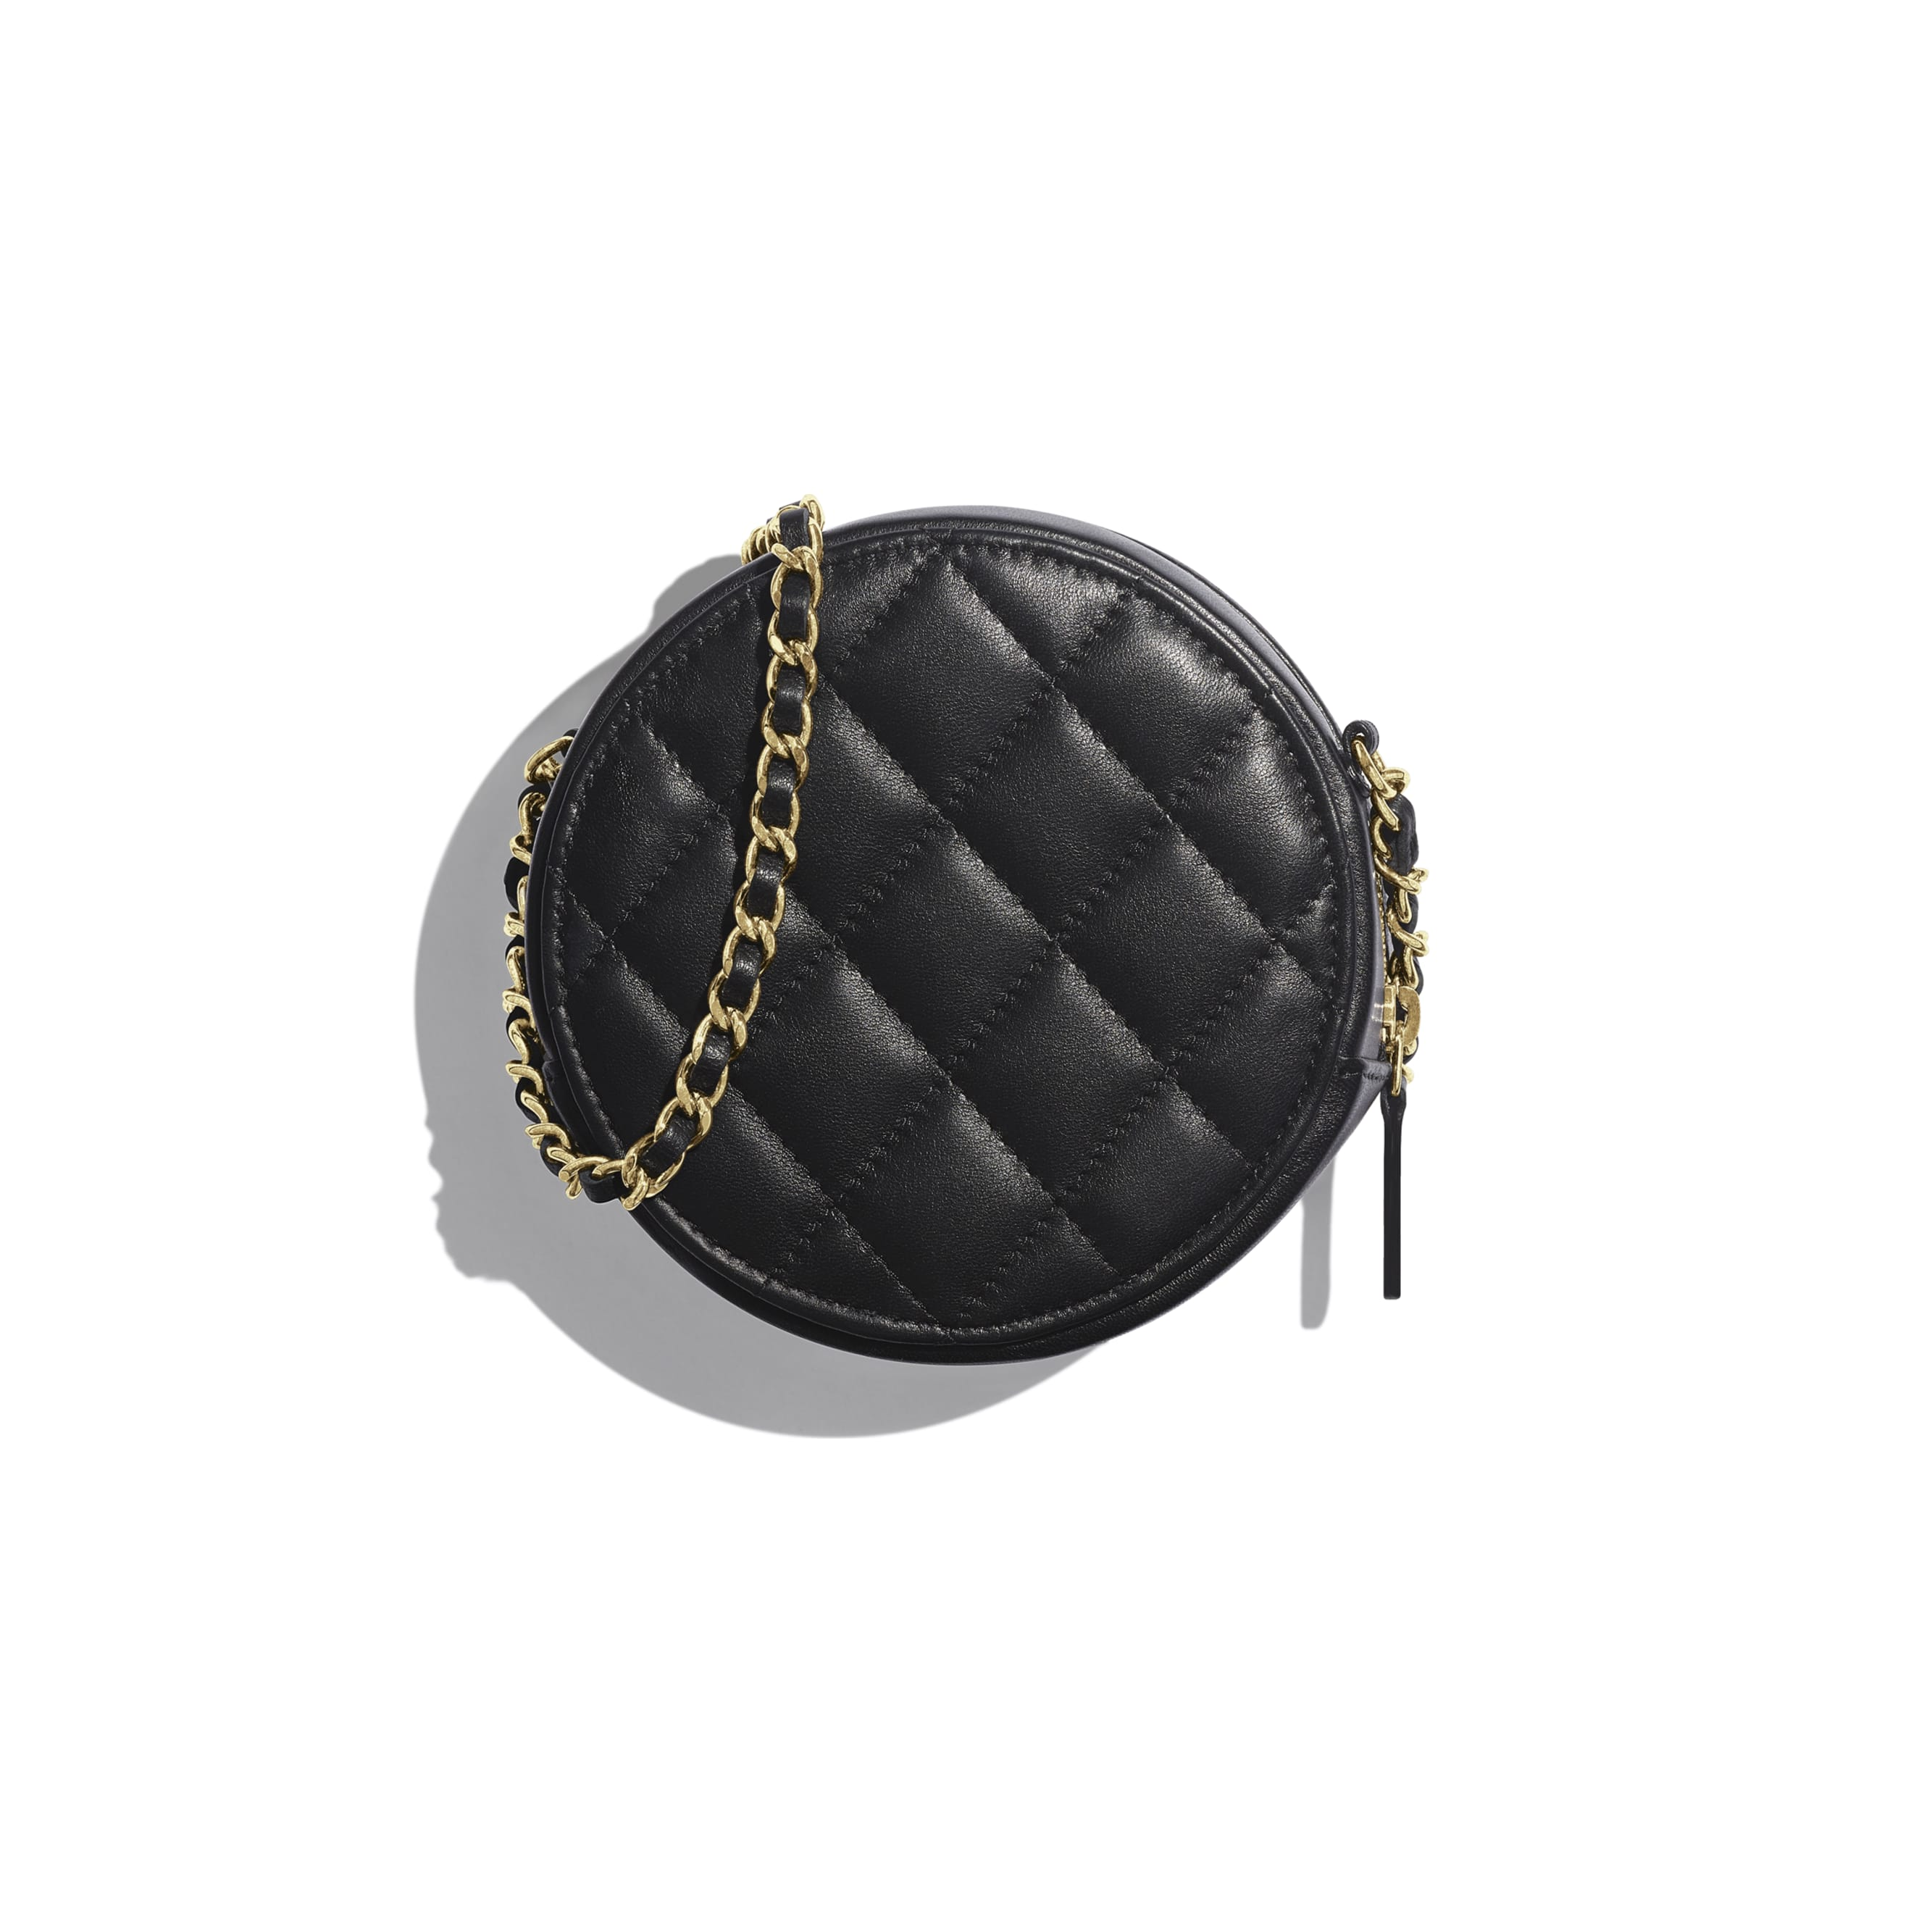 Classic Clutch with Chain - Black - Lambskin & Gold-Tone Metal - Alternative view - see standard sized version